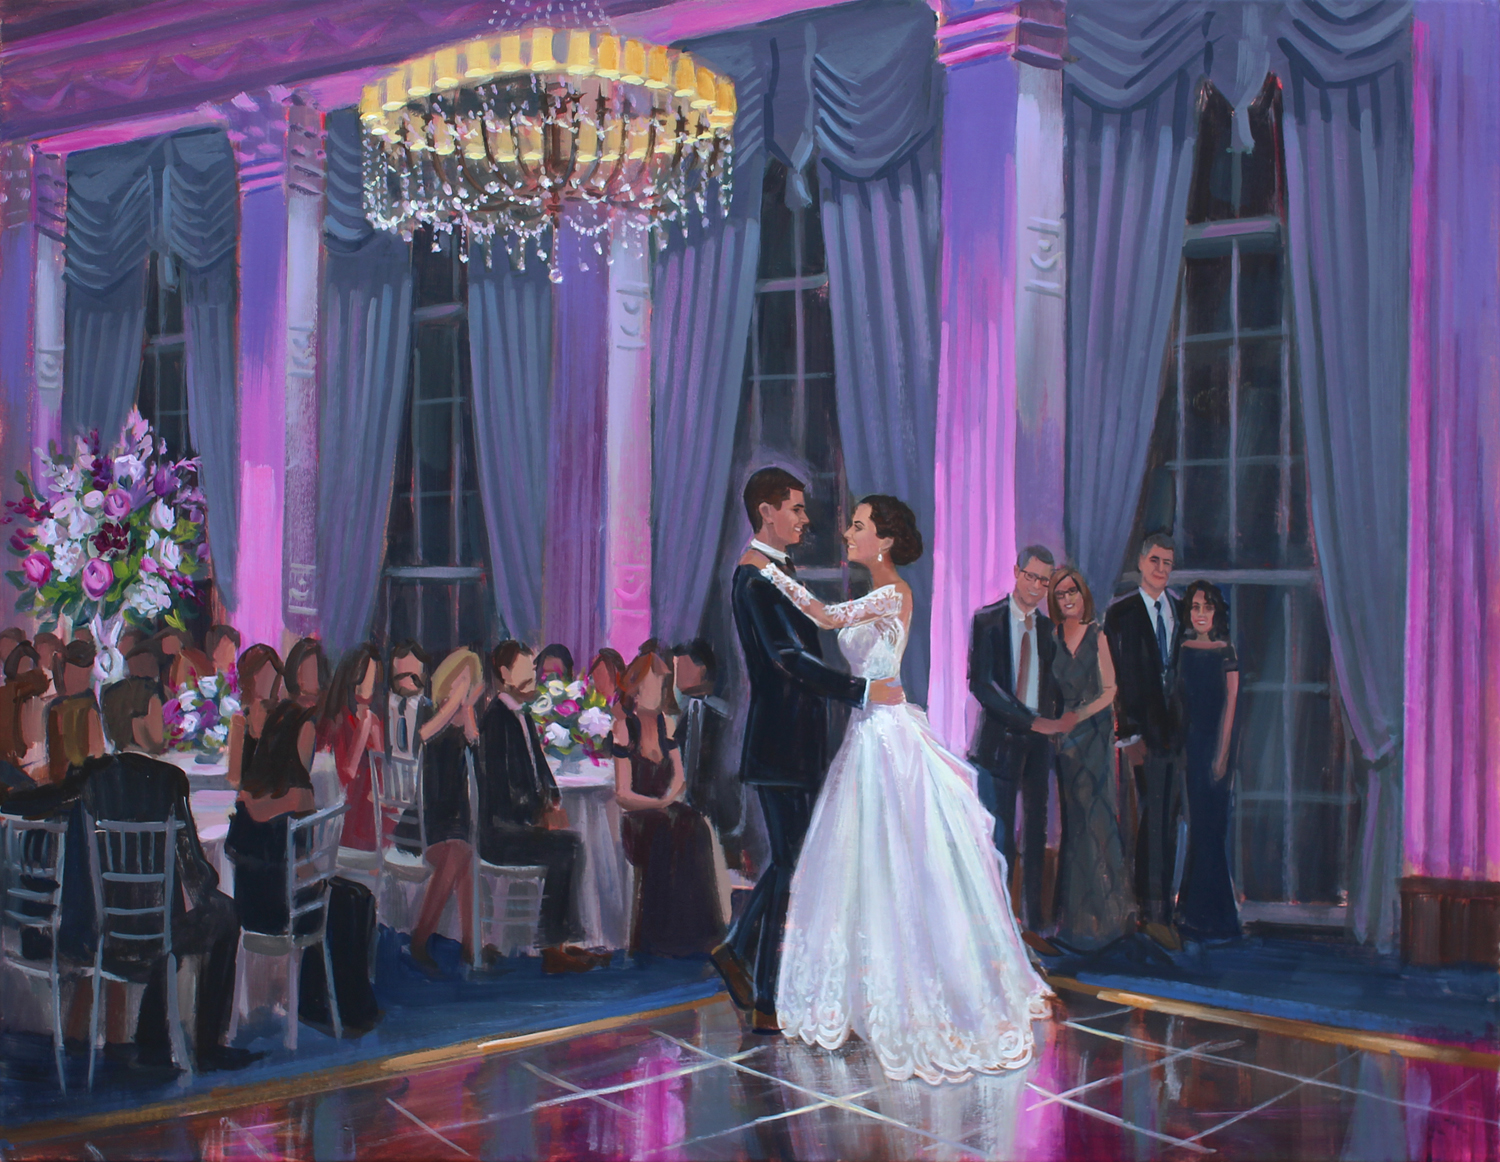 Live Wedding Painter, Ben Keys, captured Abbey + Andrews romantic first dance during their reception at the Mariott Grand in St. Louis, MO.